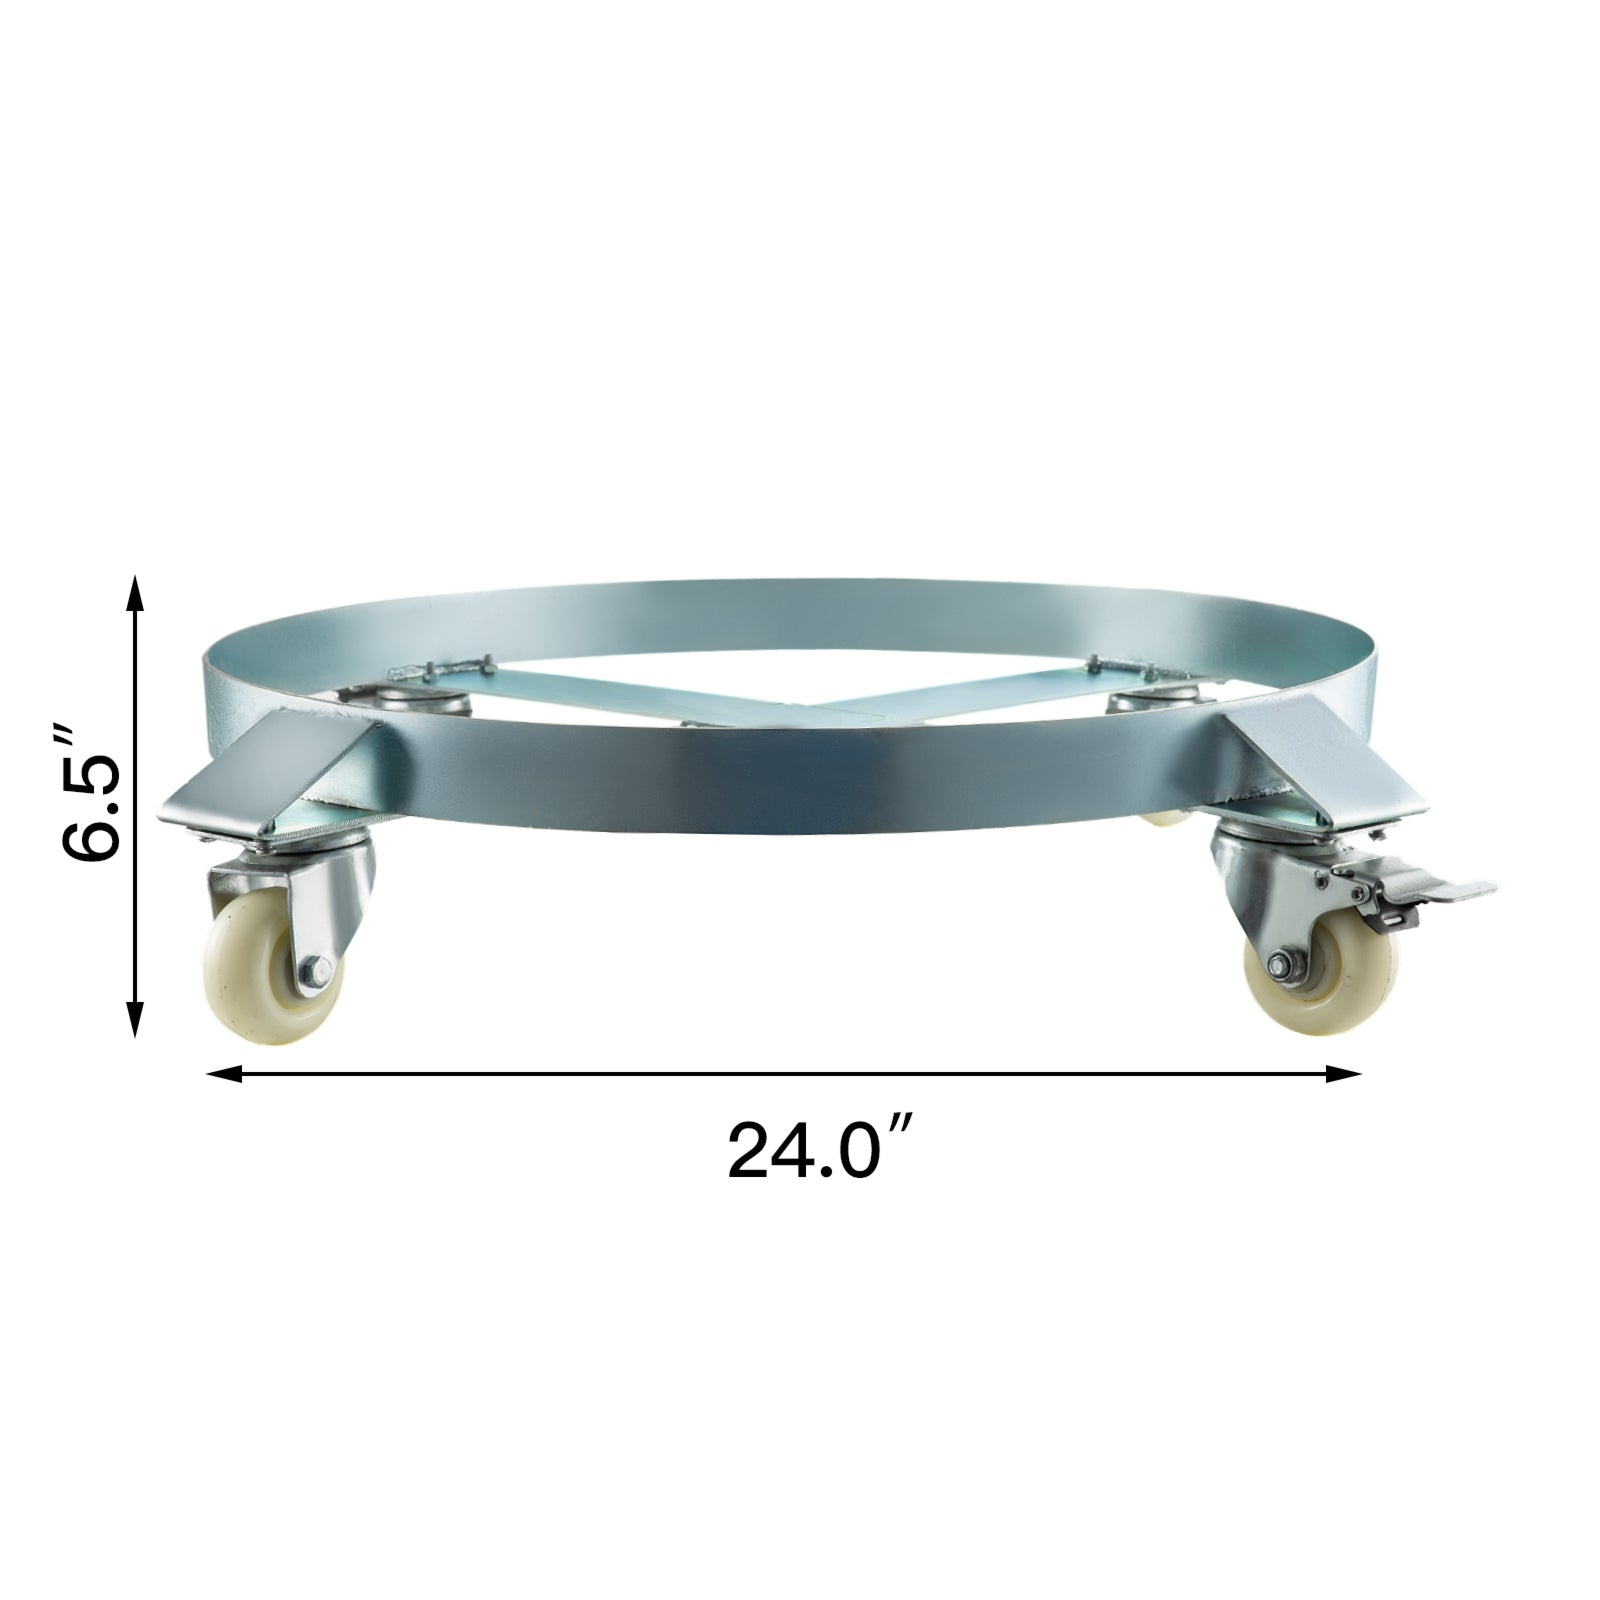 55 Gallon Heavy Duty Drum Dolly With 4 Caster Wheels